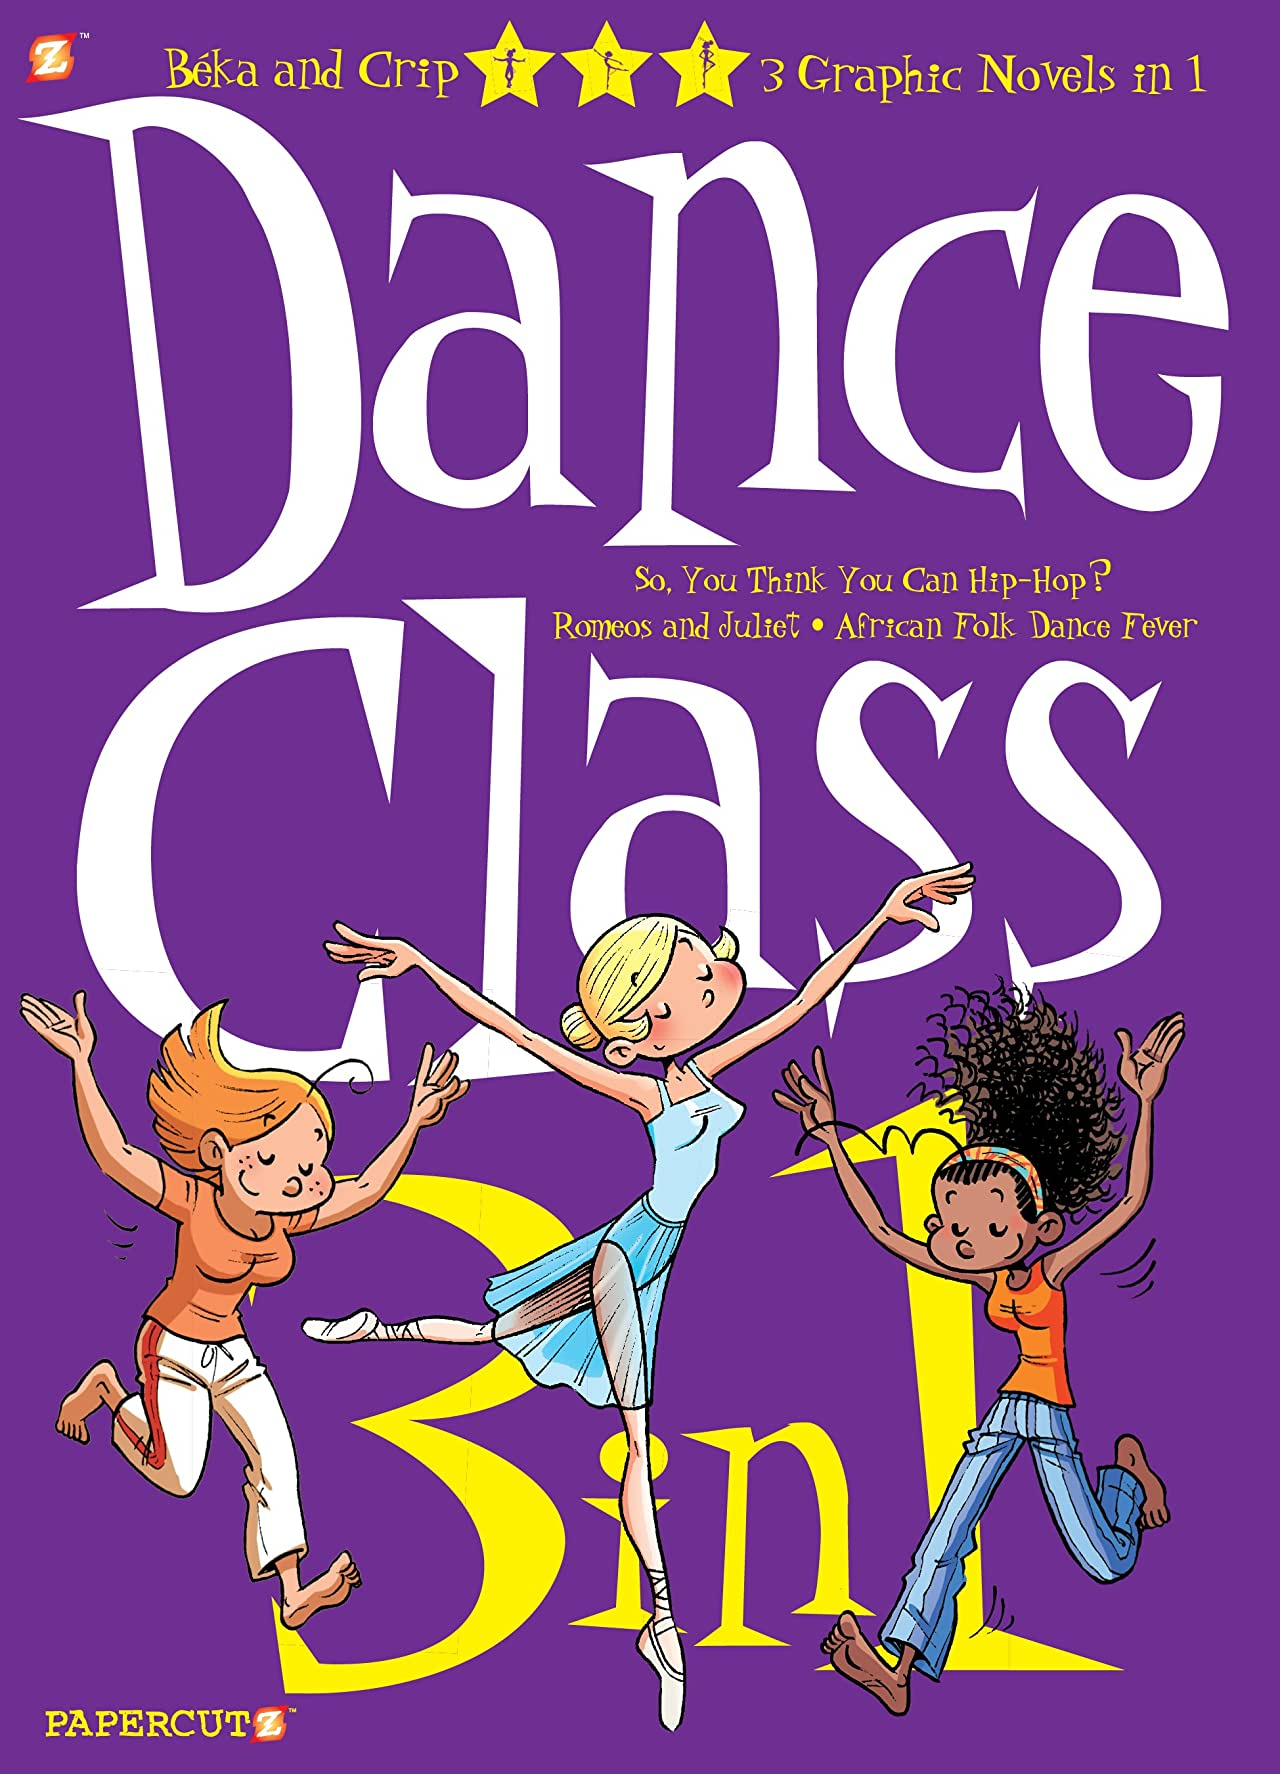 Dance Class 3 in 1 Vol. 1